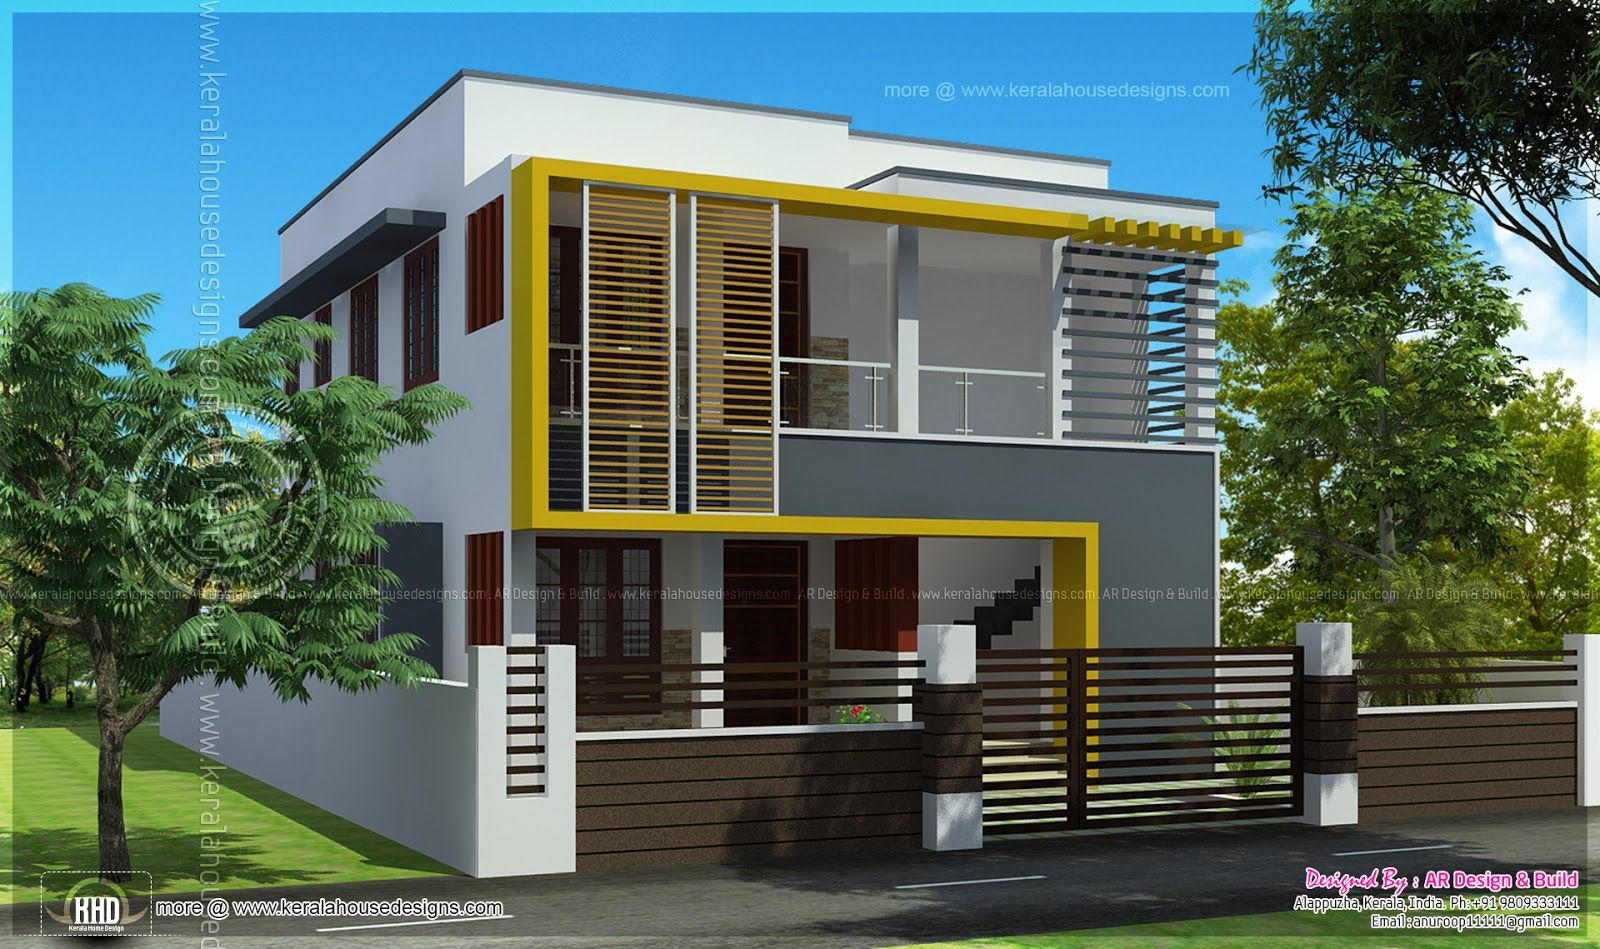 Home Exterior Design Keralahousedesigns Ideas Plans For First Floor Total Area Bedrooms Best Free Idea Inspiration